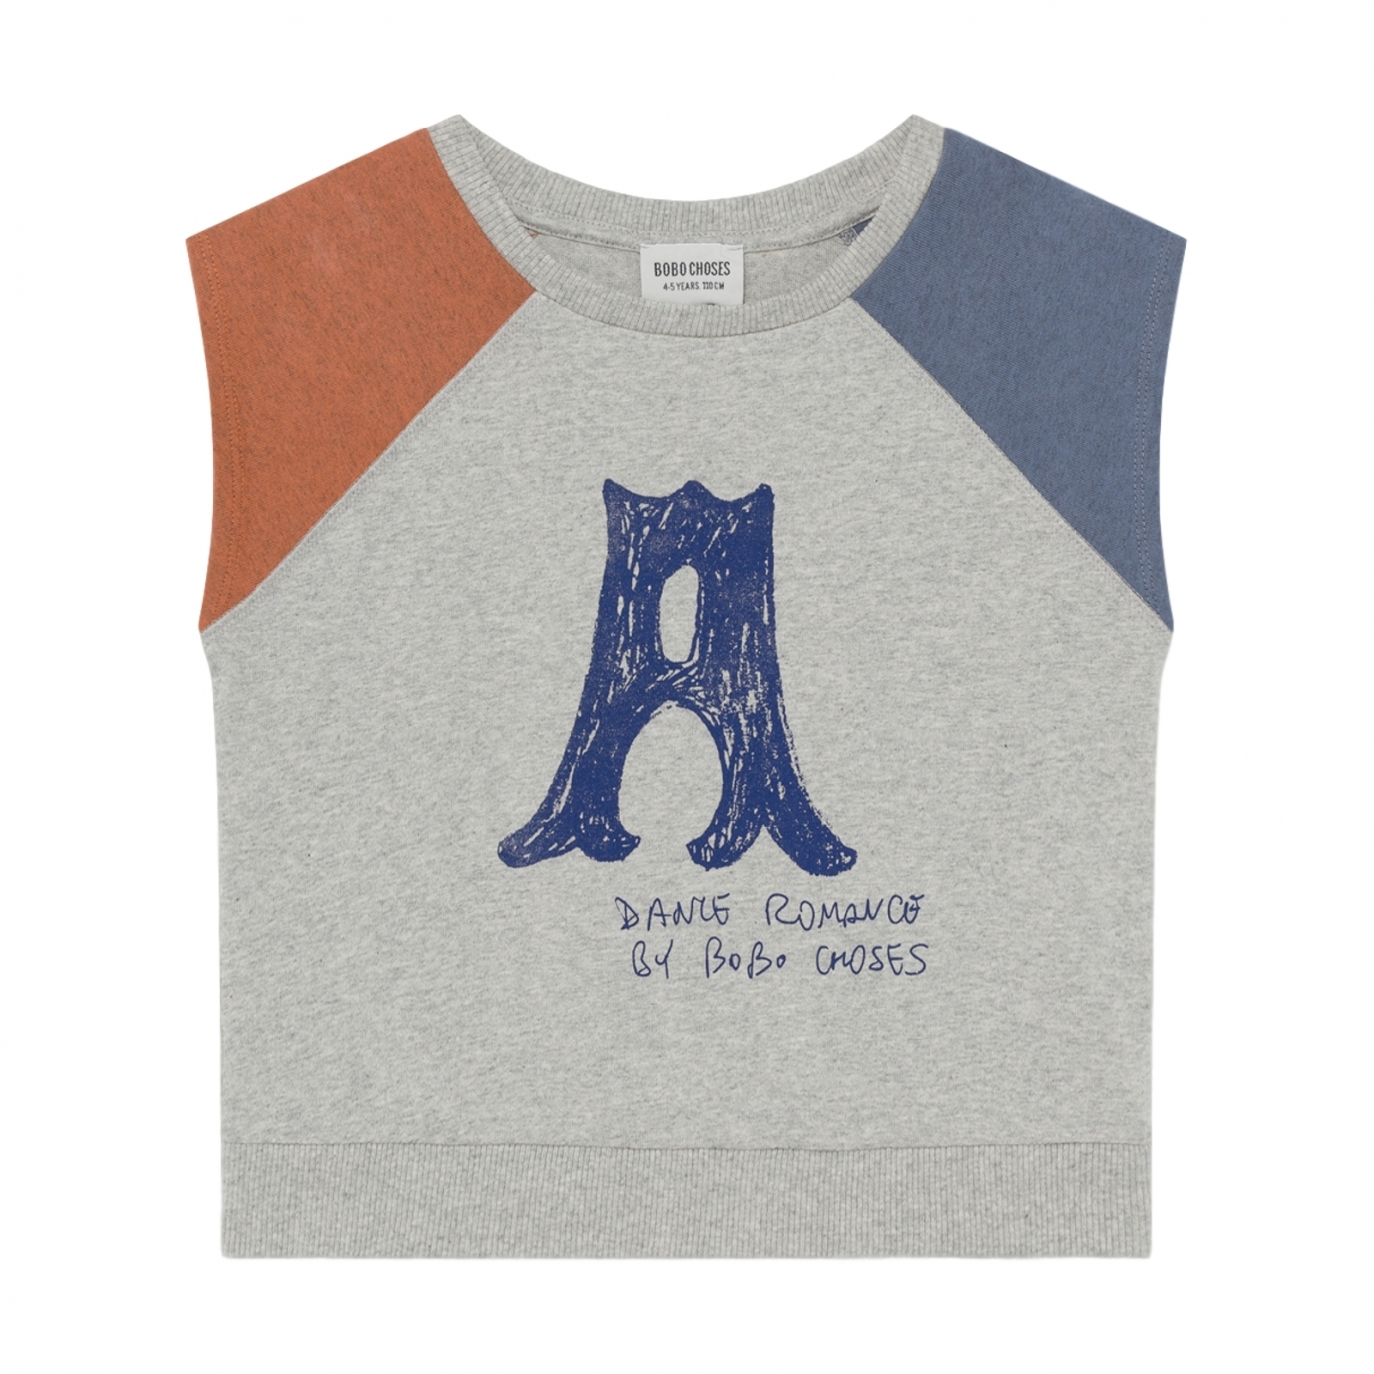 Bobo Choses - A Dance Romance Sleeveless T-shirt Grey - 1